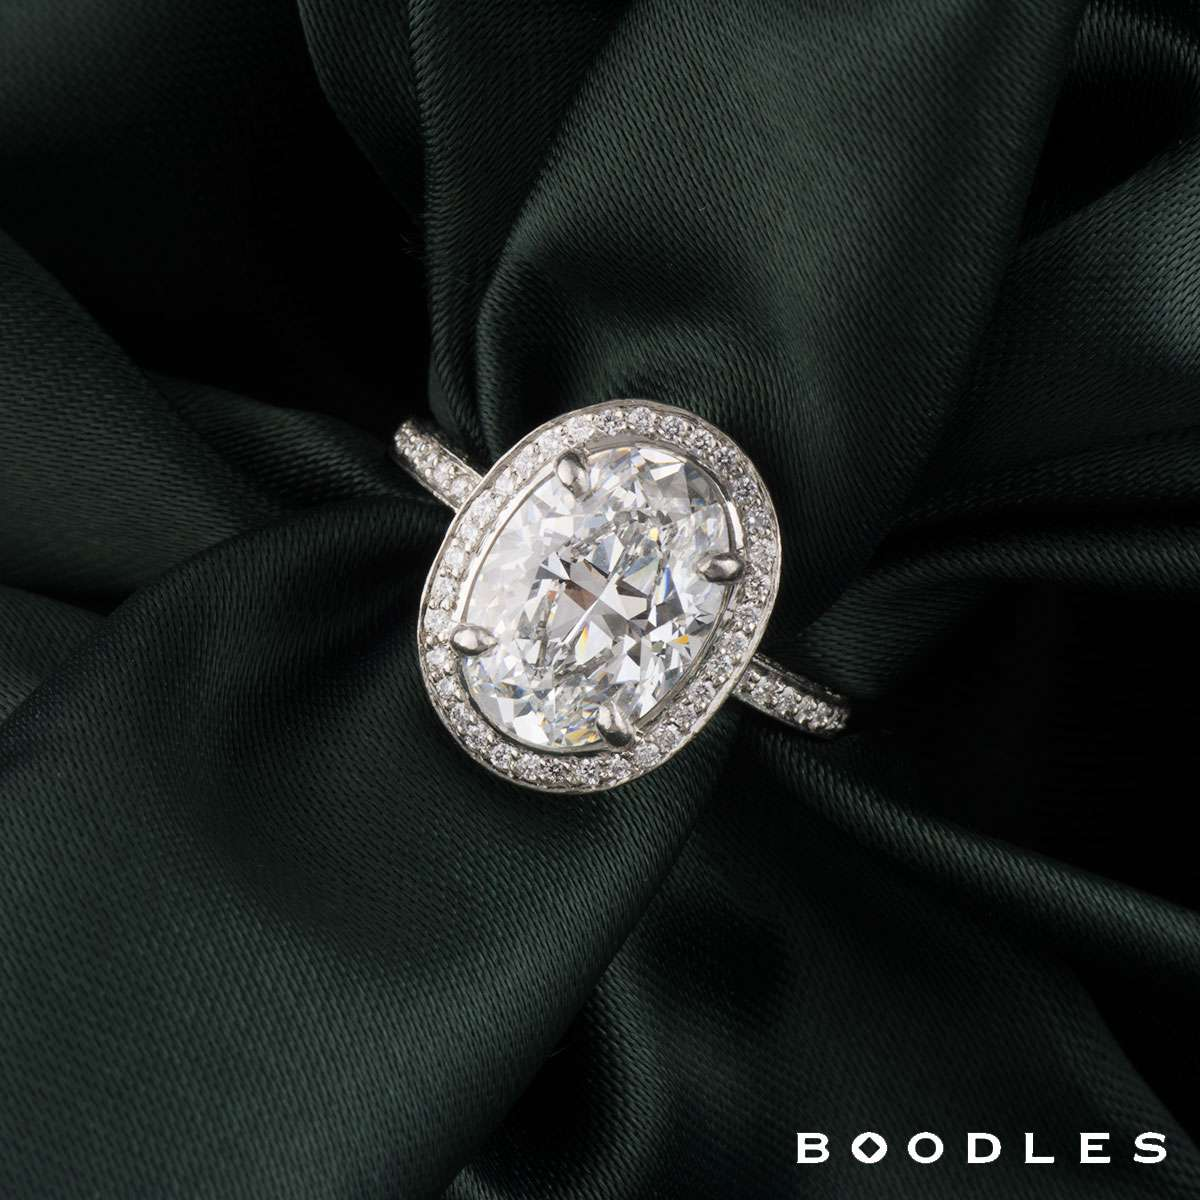 Boodles Oval Cut Diamond Ring in Platinum 3.02ct D/VS2